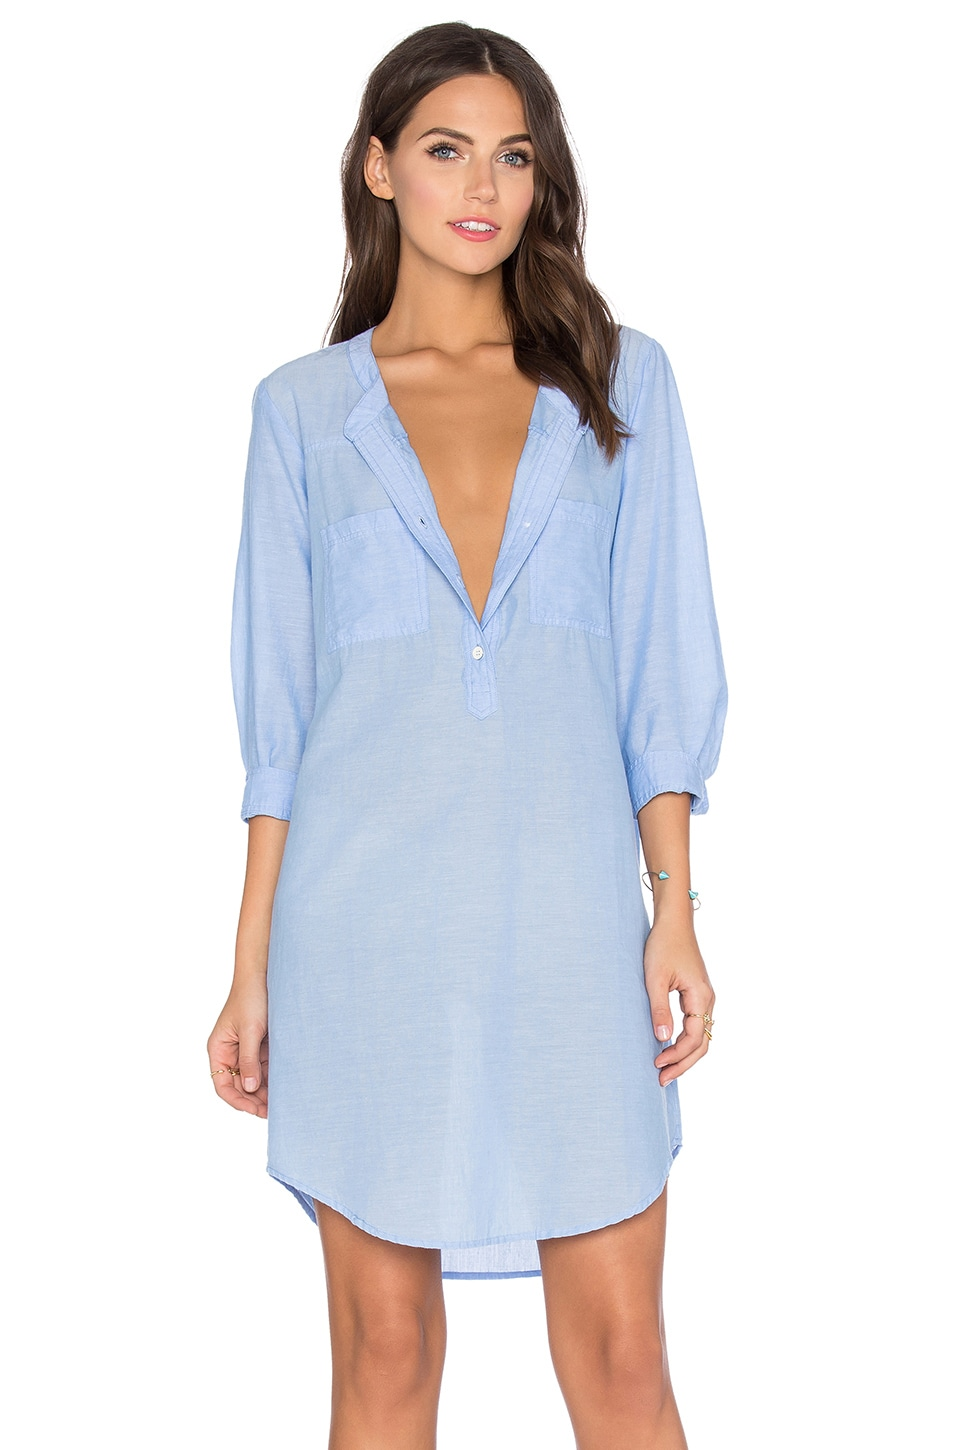 Velvet by Graham & Spencer Doma Cotton Chambray Shift Dress in Chambray